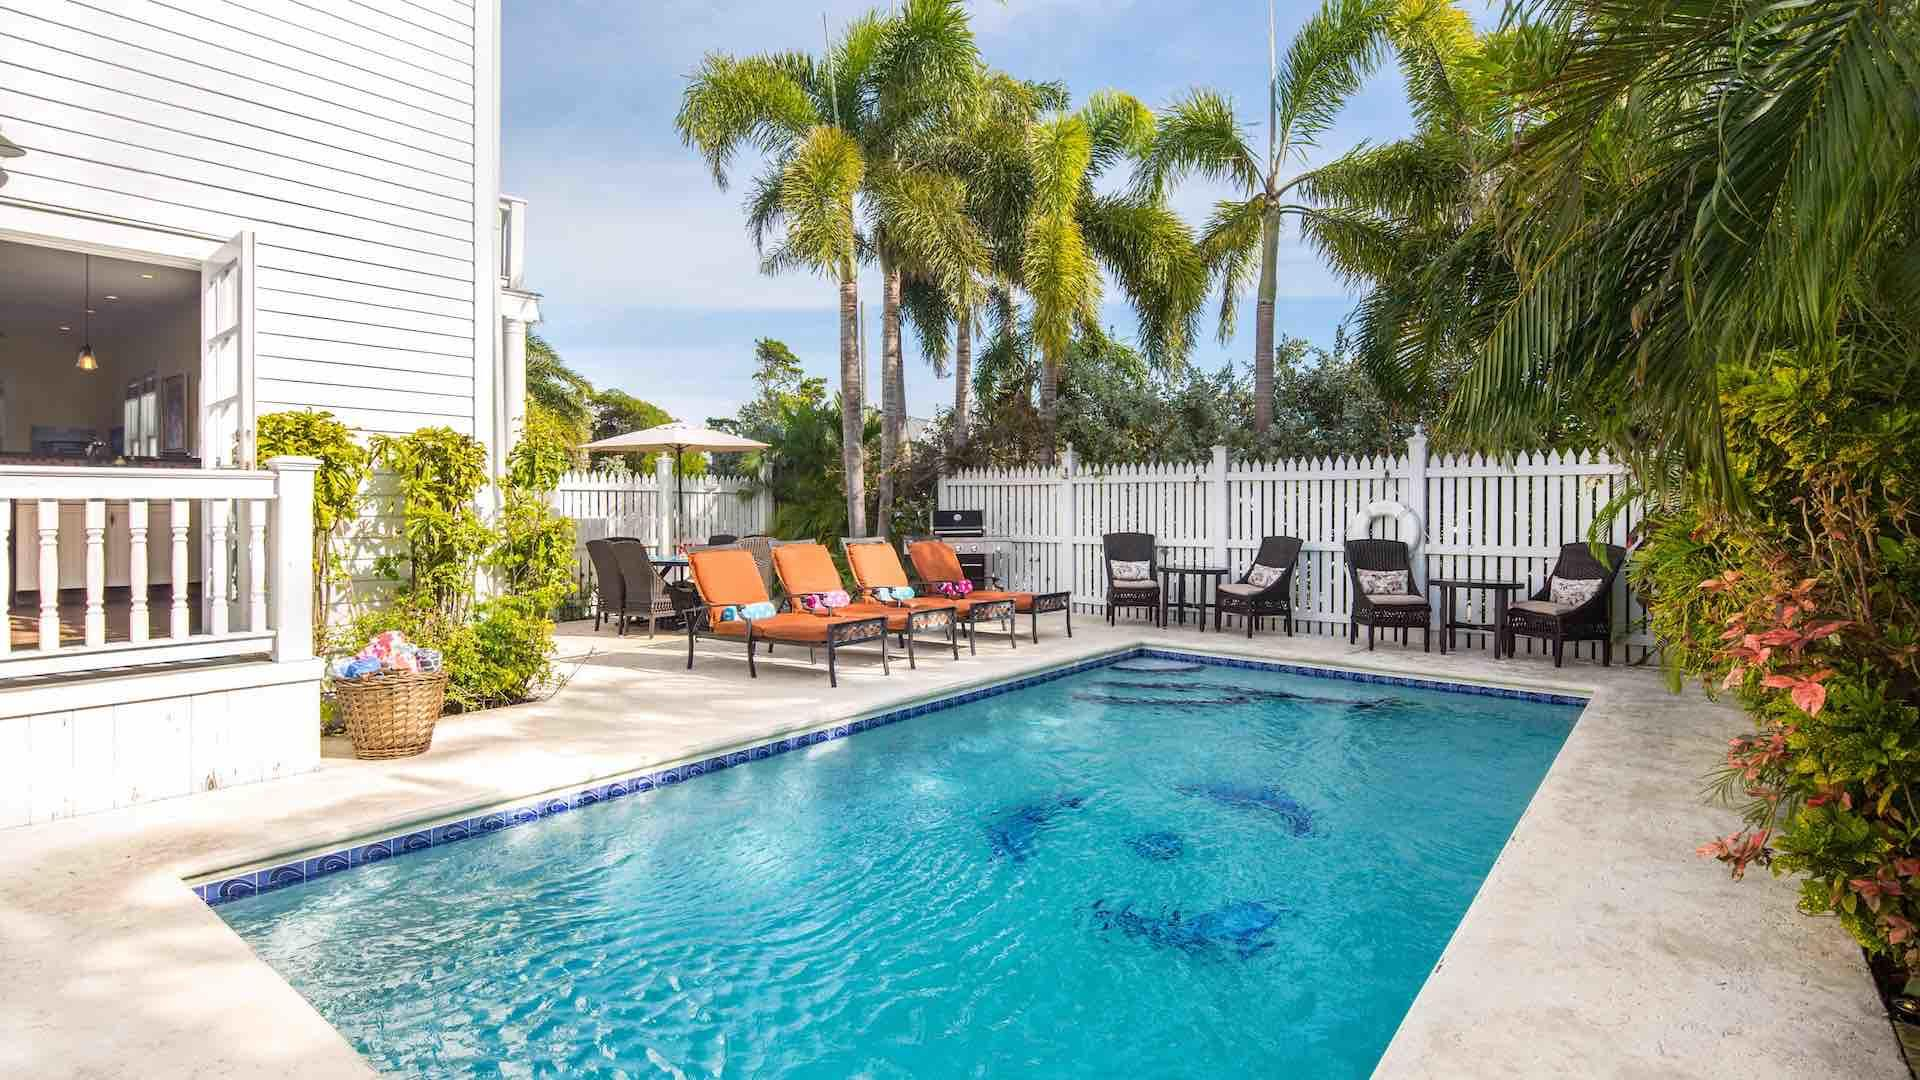 You'll have plenty of outdoor seating options around the pool...